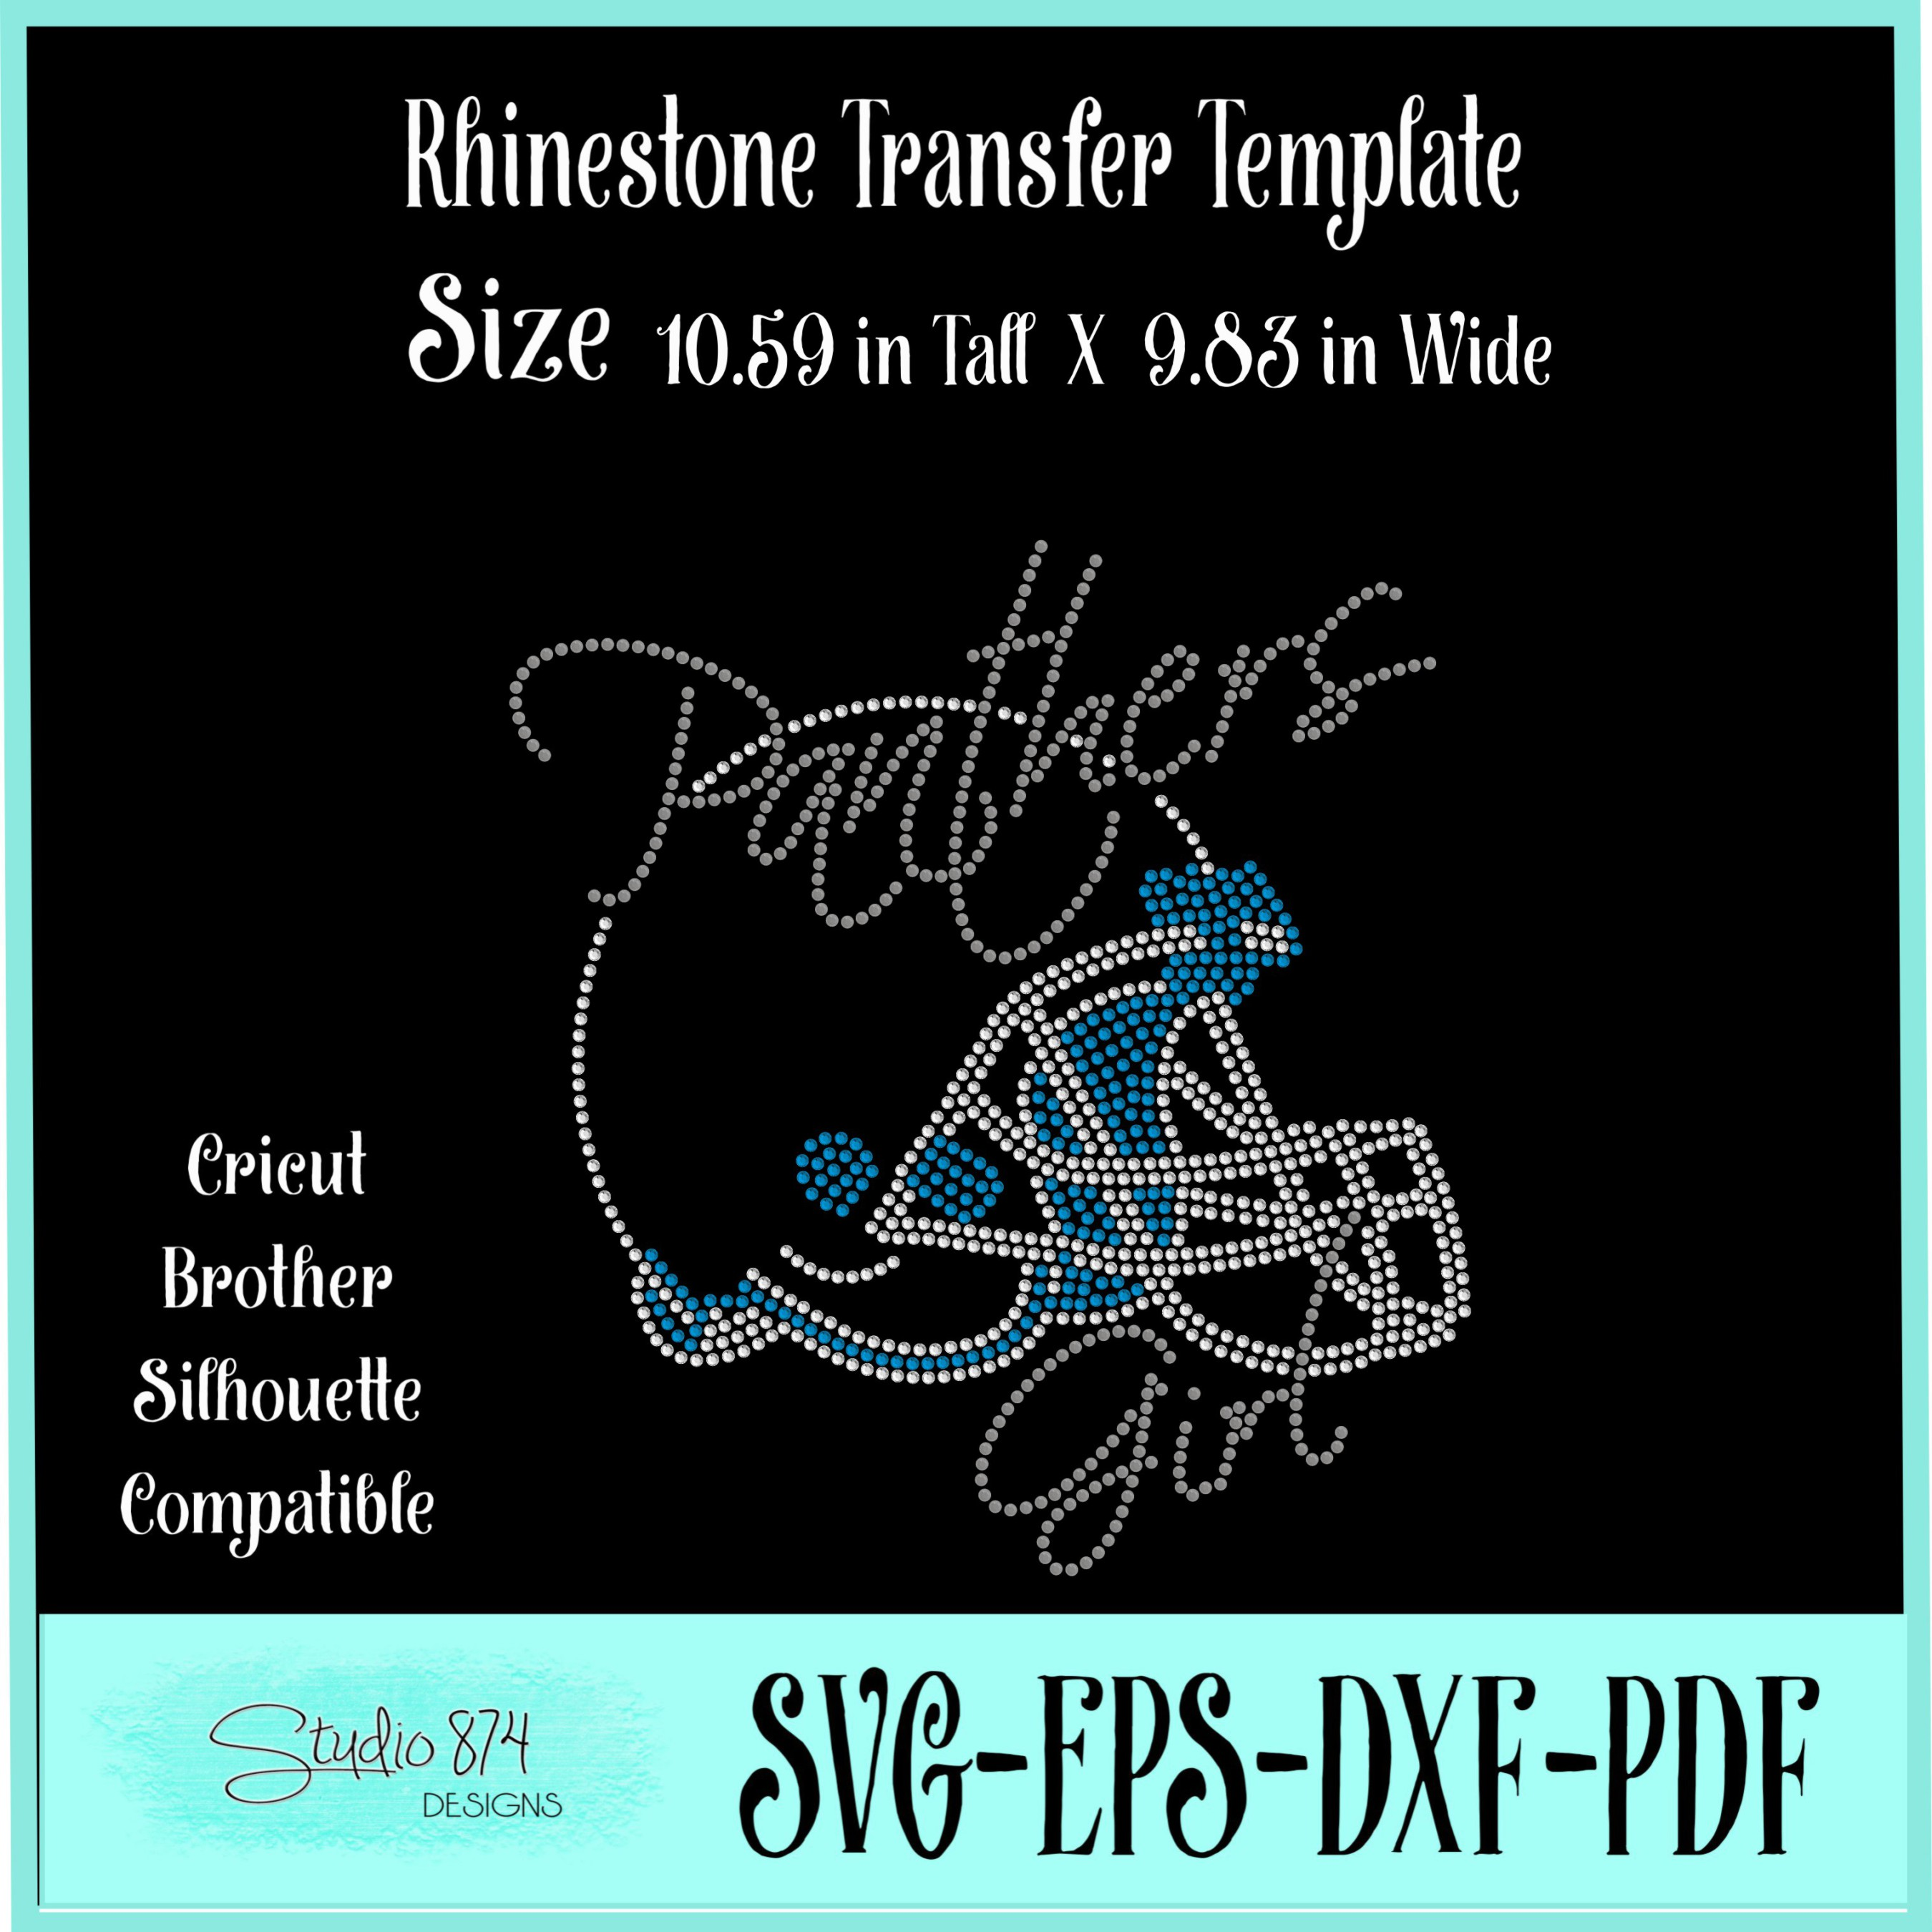 Panthers Football Rhinestone Template Download Girl R1 example image 2